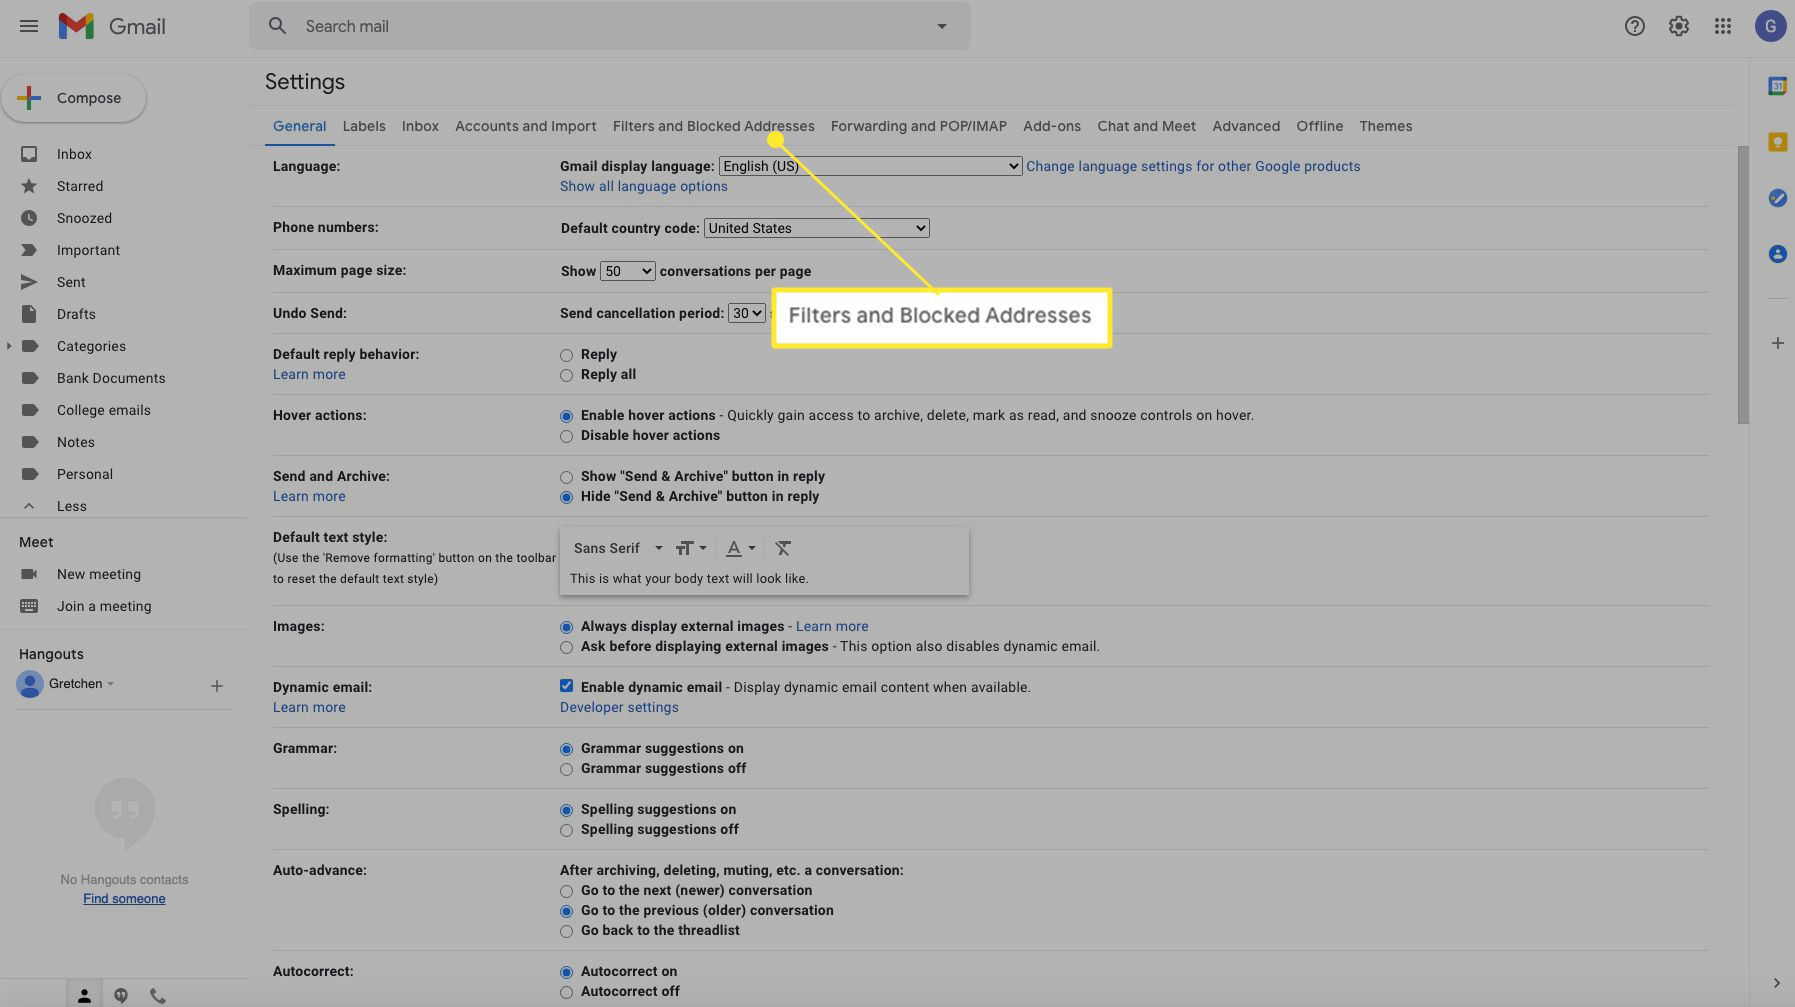 Gmail settings with